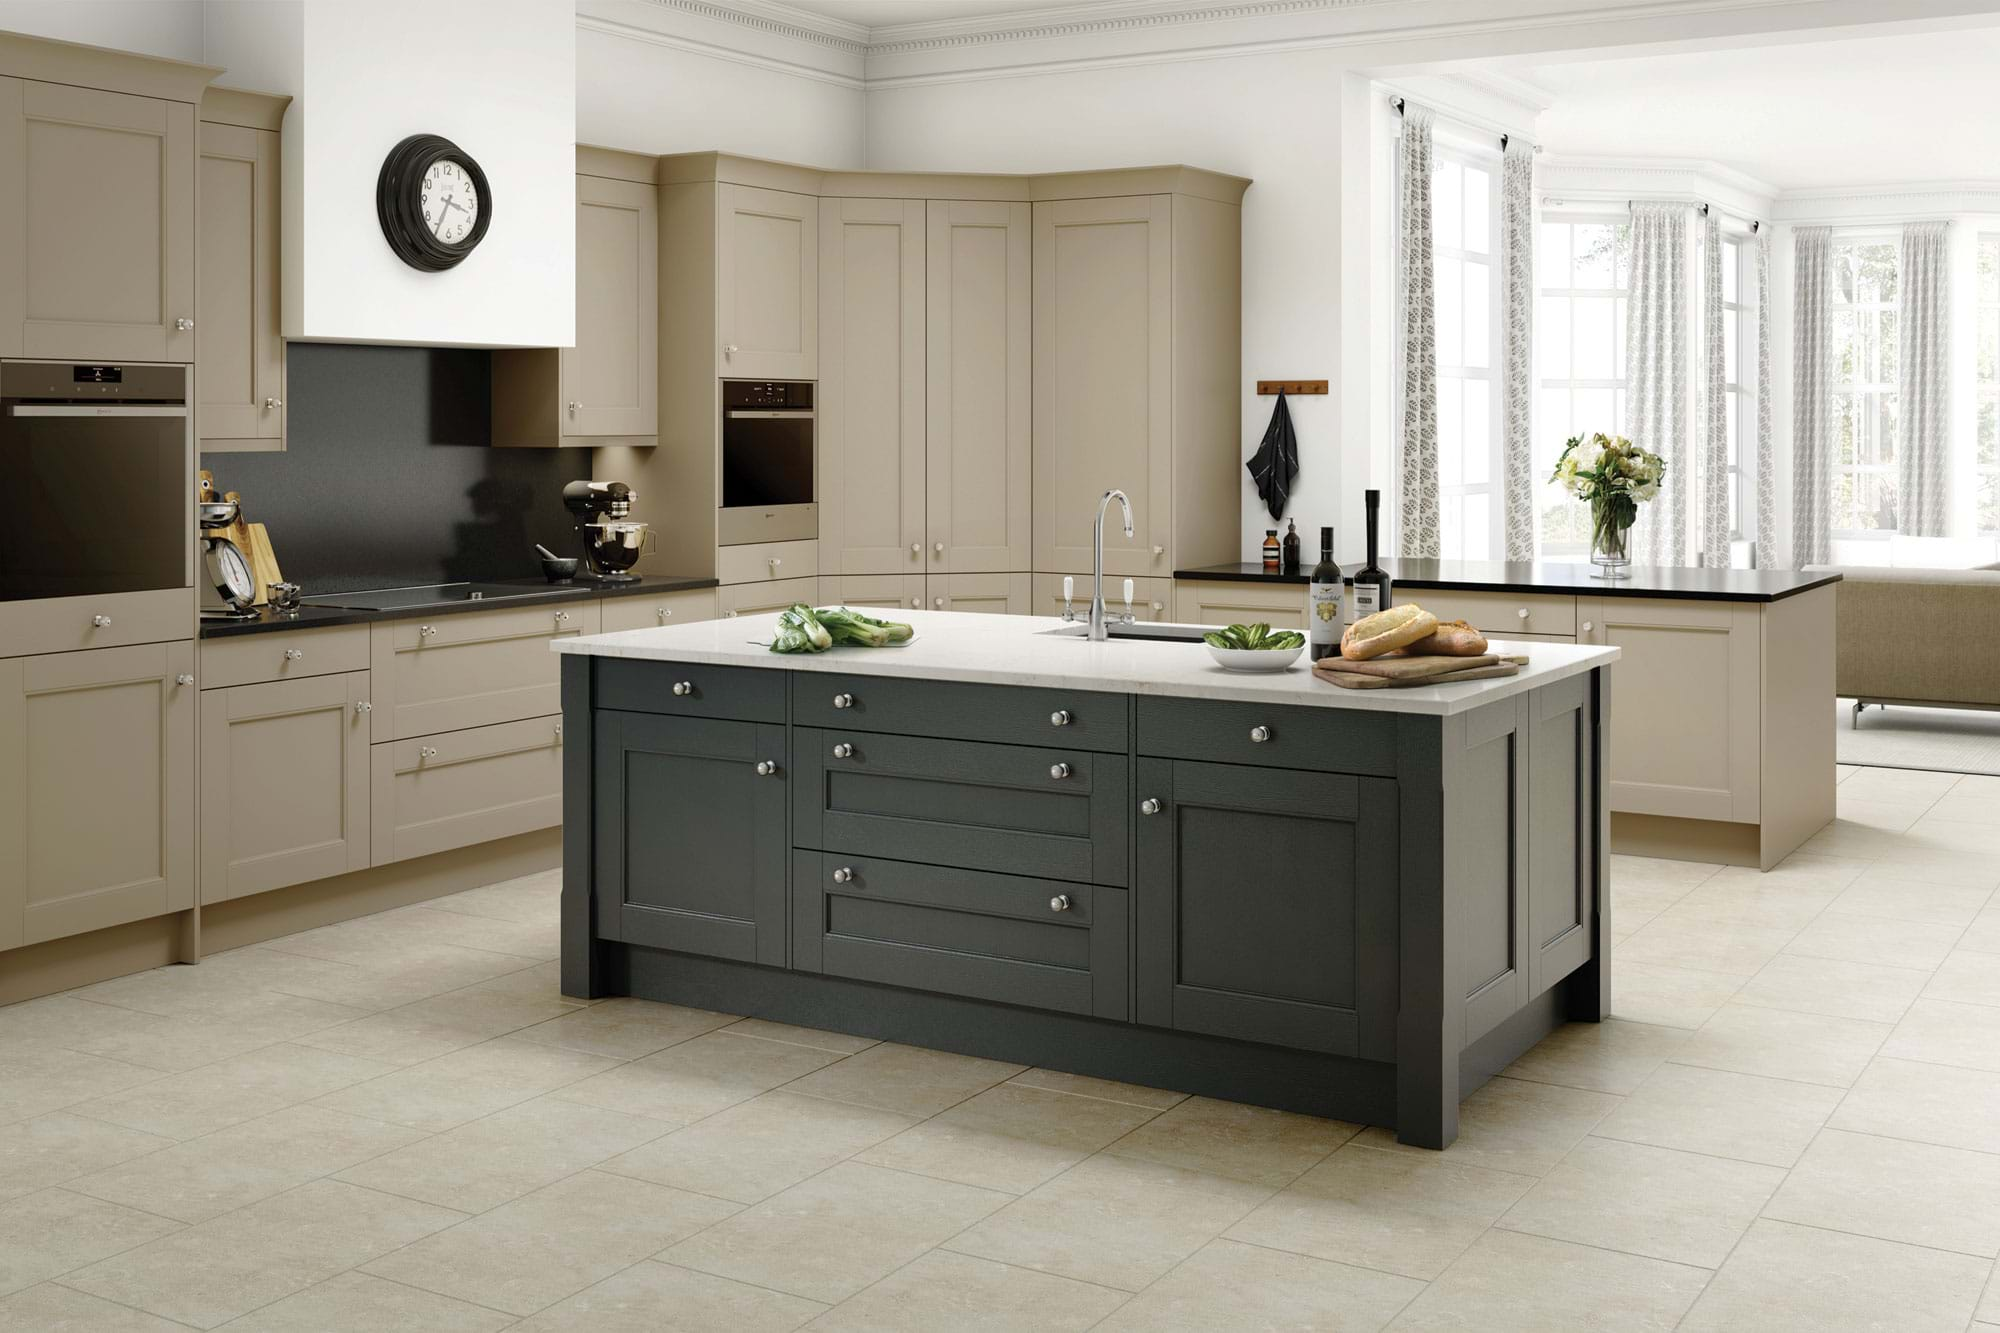 Shake Things Up With A Shaker Kitchen | Kitchens | Leekes ...